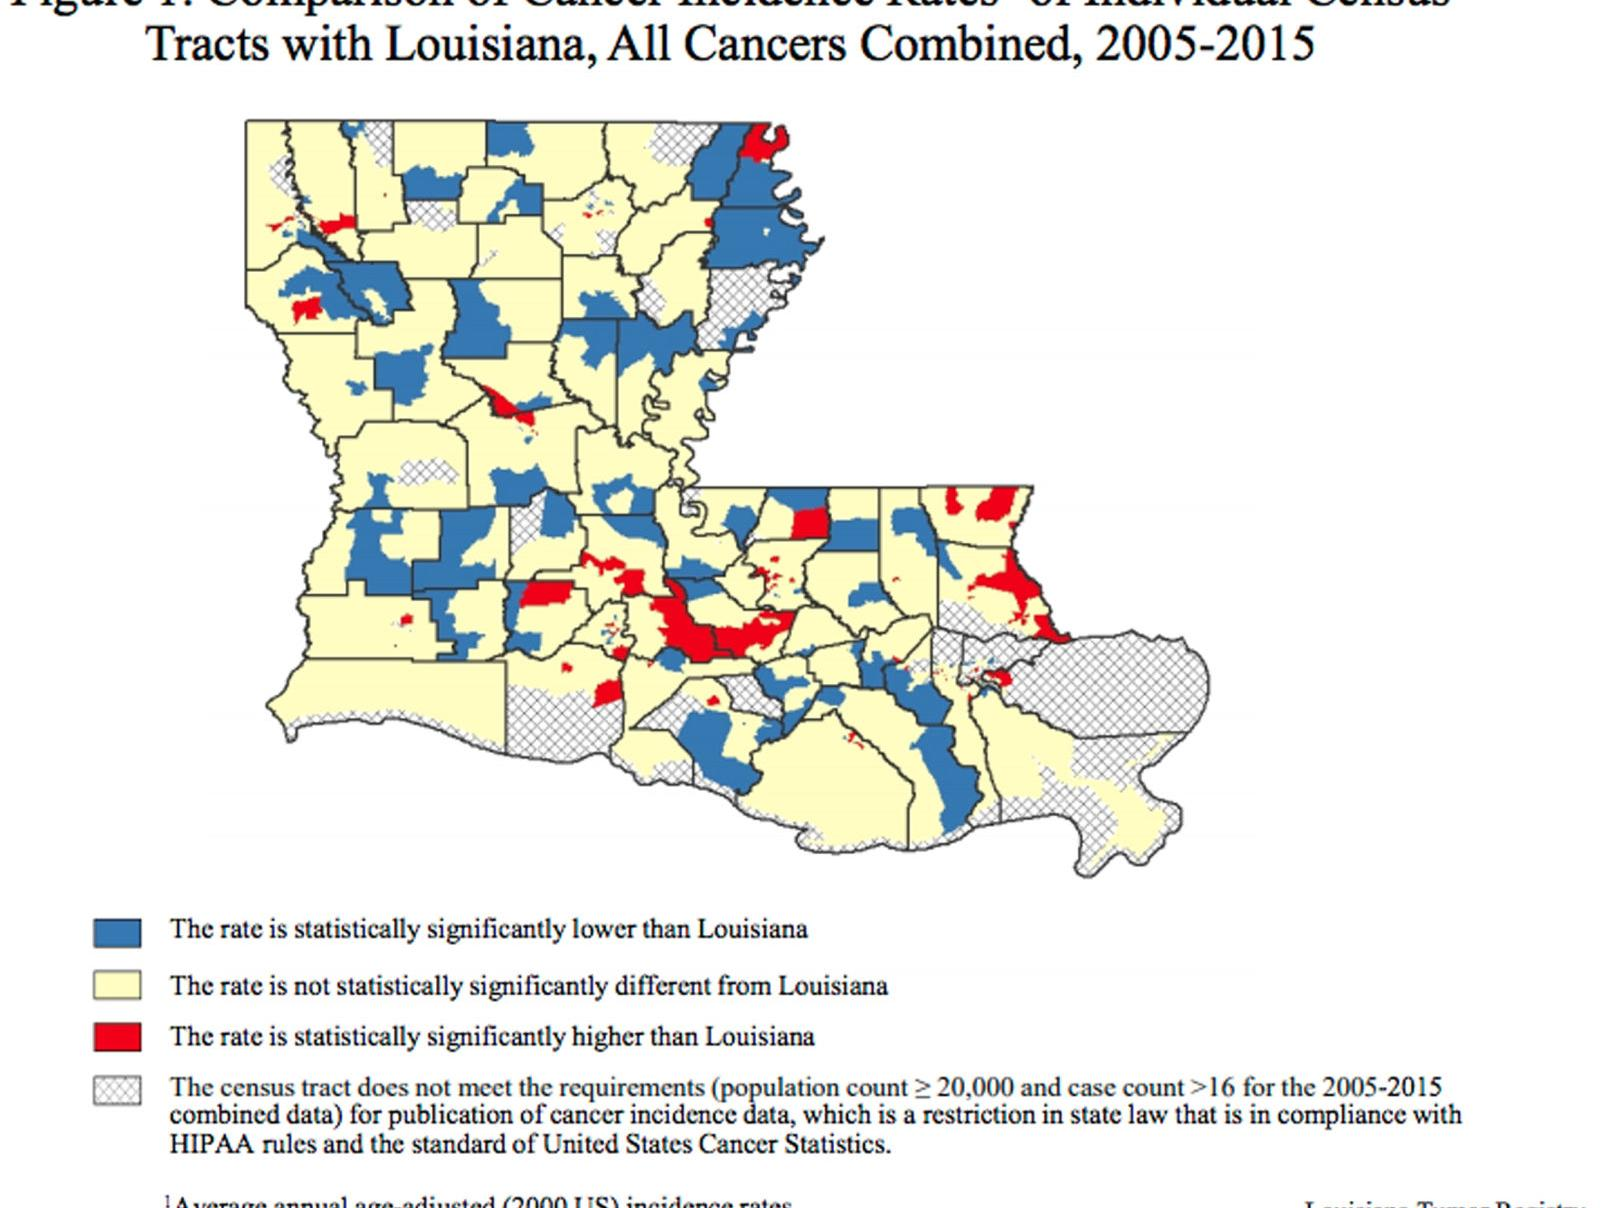 alley louisiana map Report On Louisiana Cancer Rates Finds Results Are Mixed On Link alley louisiana map